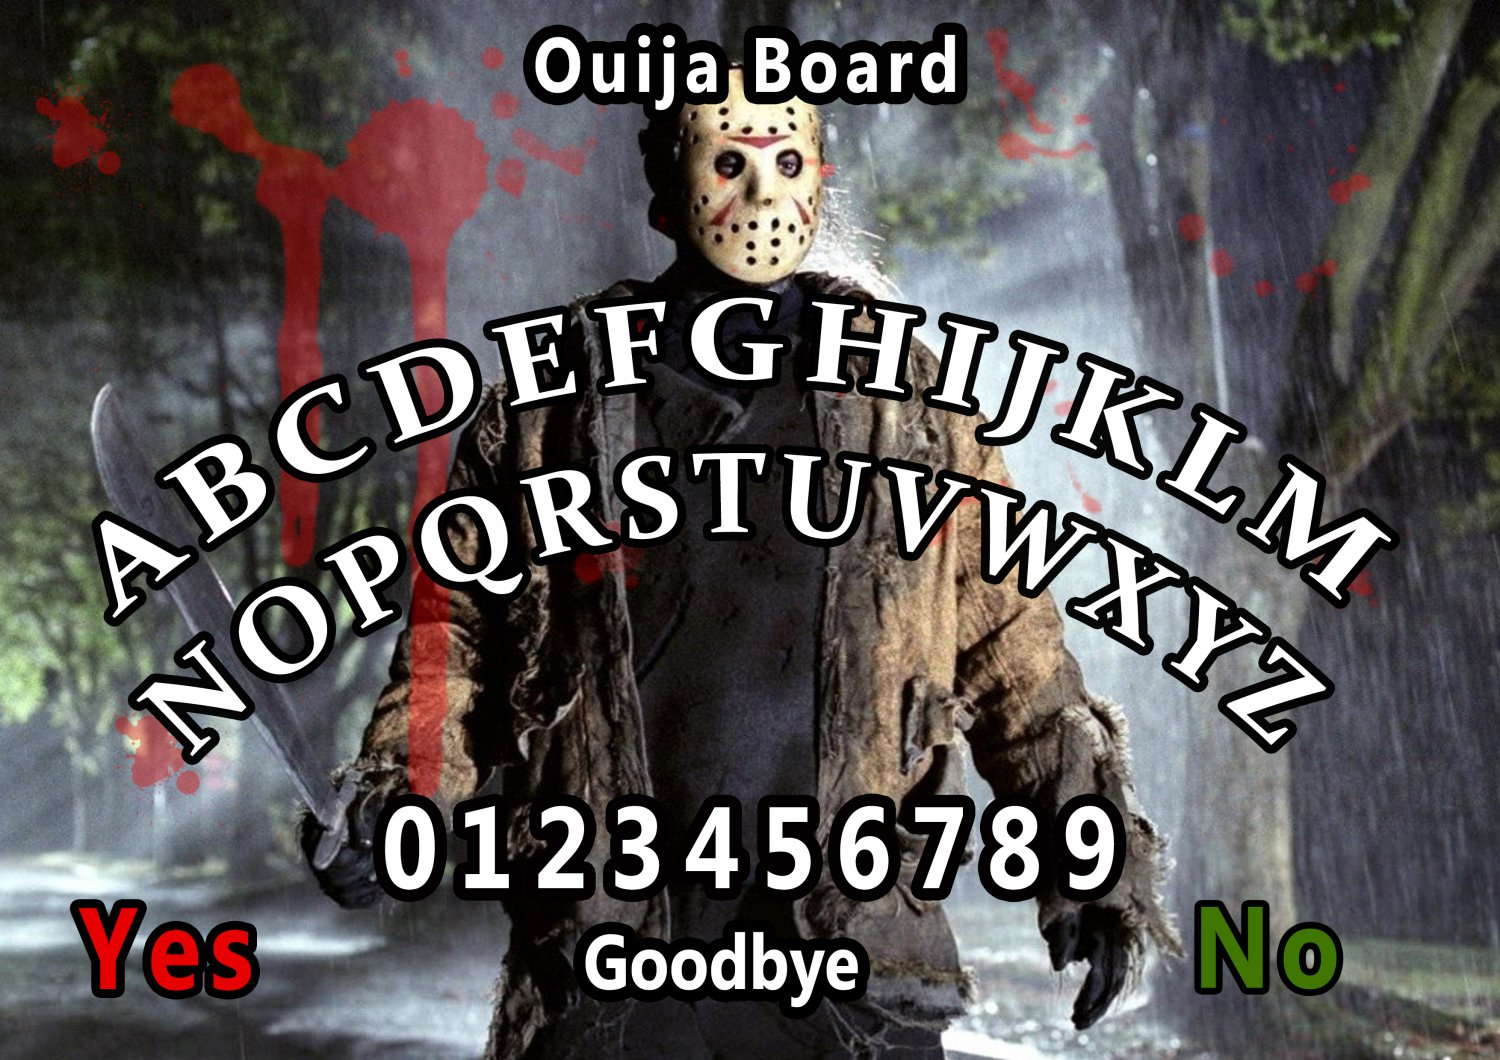 Friday The 13th A4 Laminated Ouija Board / Poster   Ghost Hunting   EVP   Seances. Free UK shipping